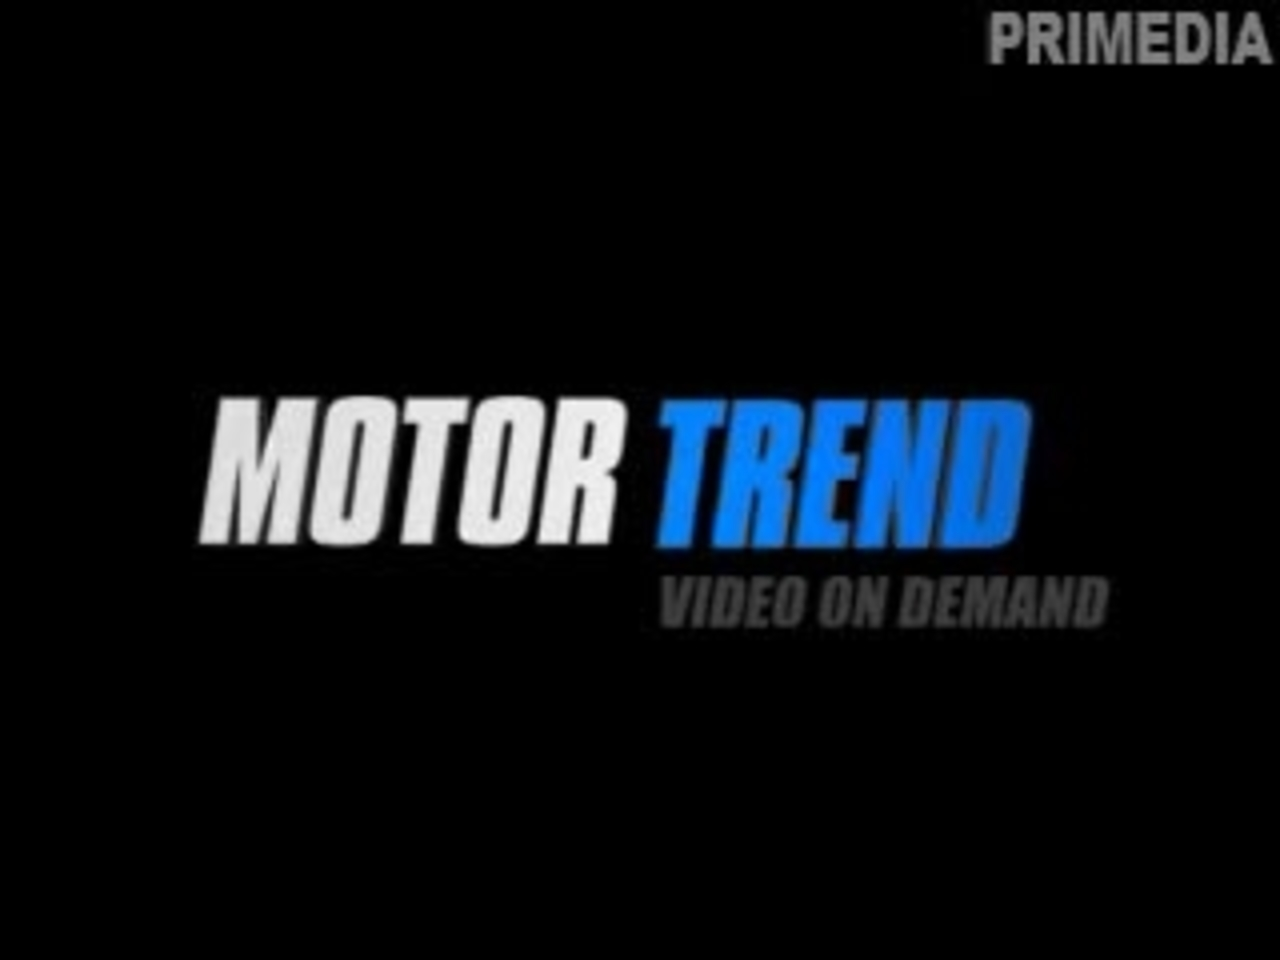 Feature: Hot lap in the Mercedes-Benz CLK63 AMG Black Series Video